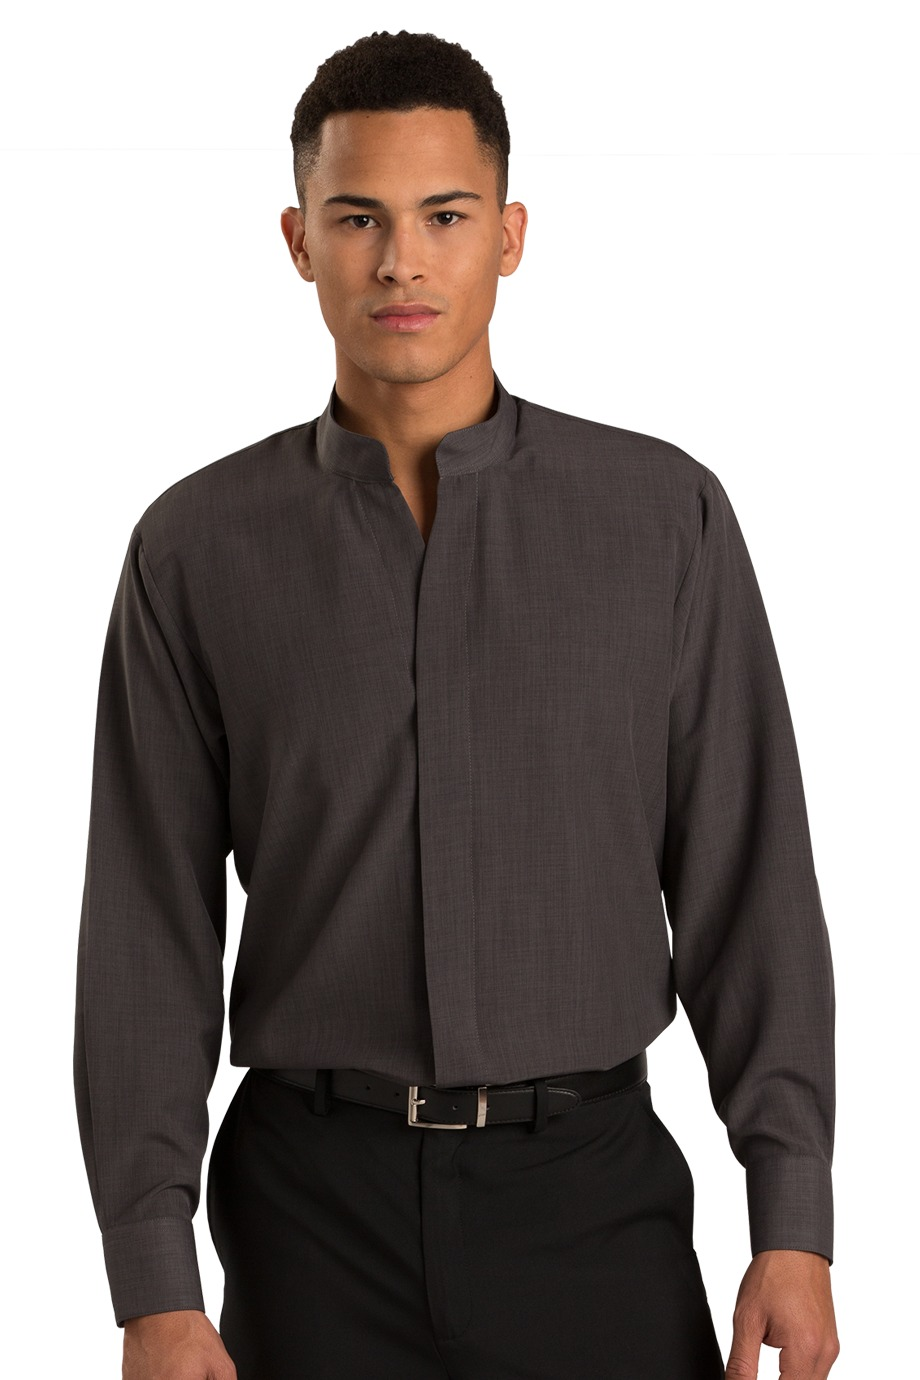 Find great deals on eBay for Mandarin Collar Shirt in Dress Shirts for Men. Shop with confidence.